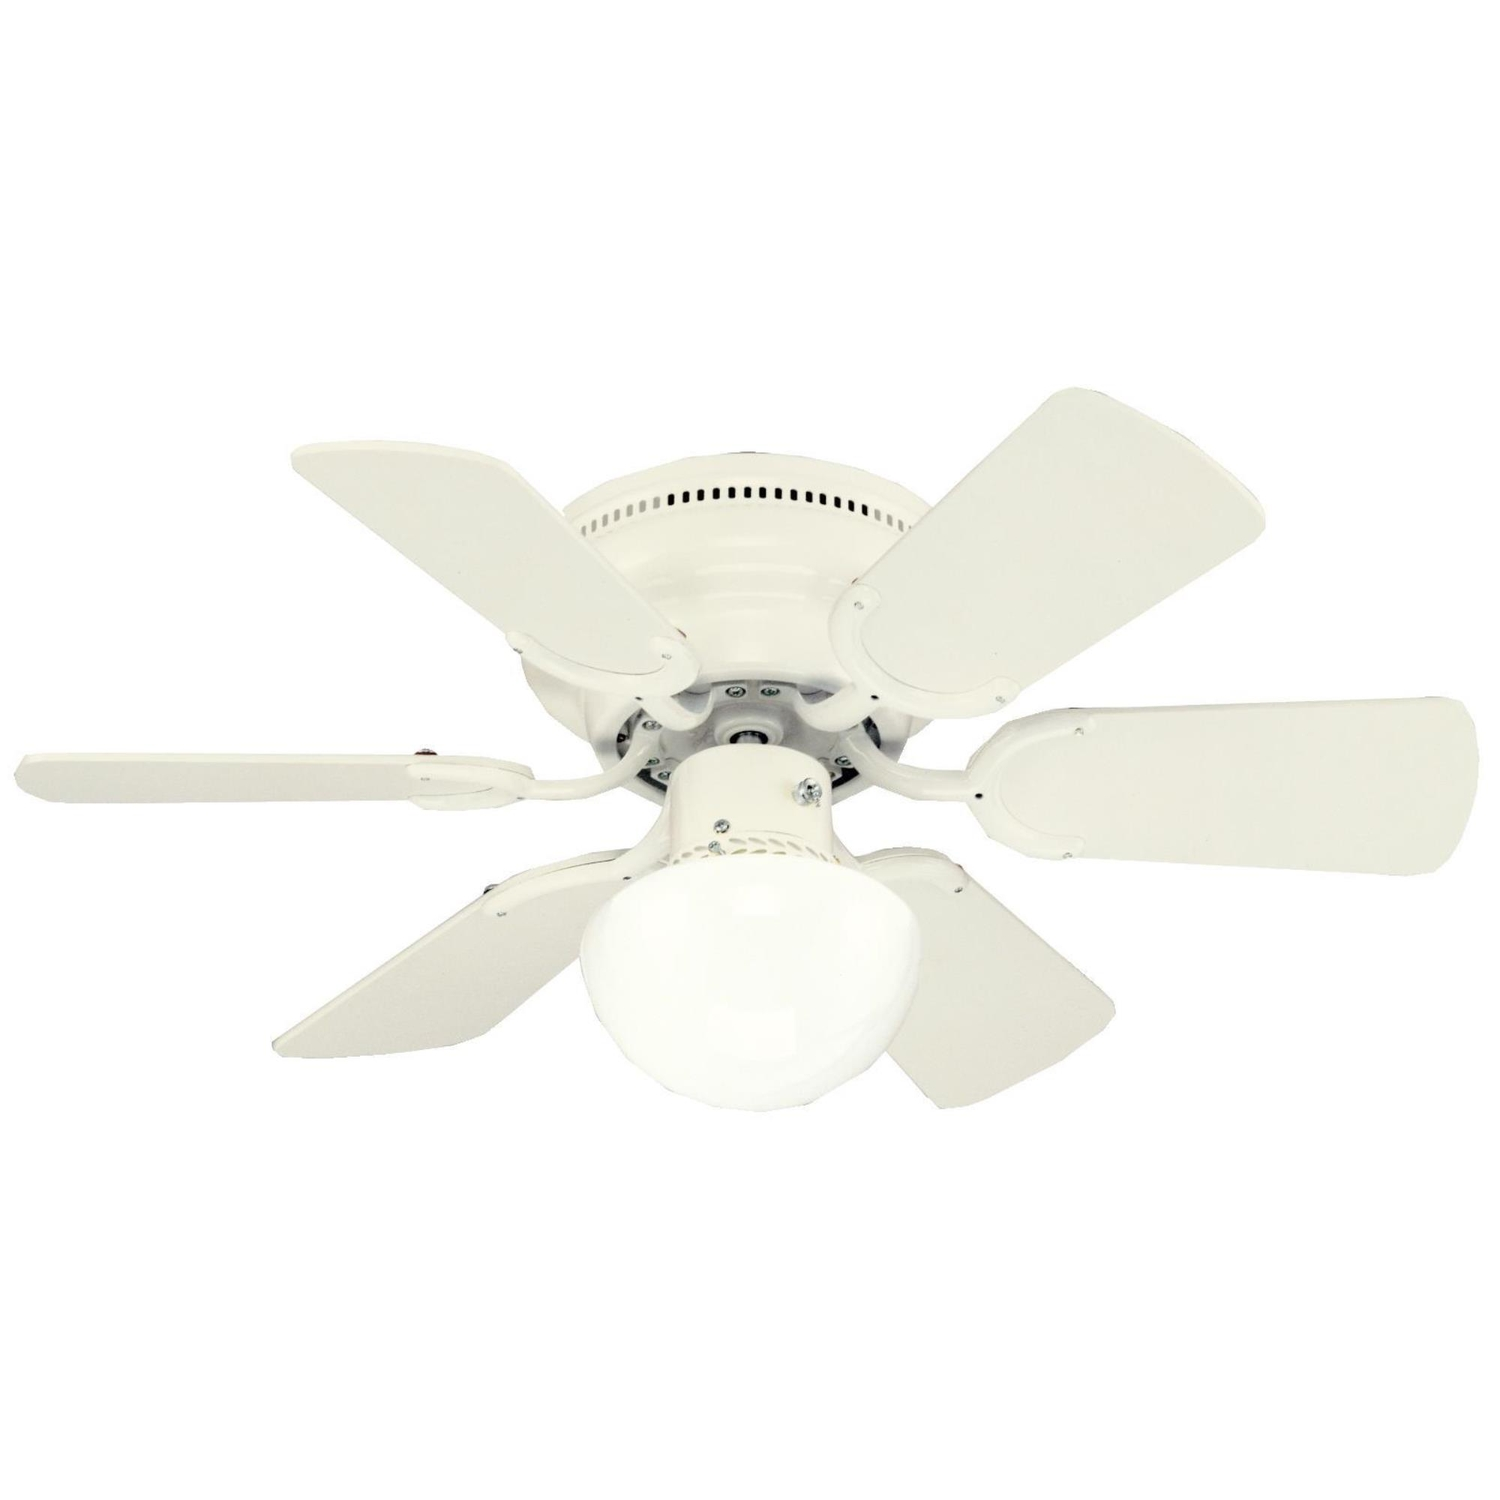 Ceiling Fan With Folding Blades Westinghouse Petite 17 5 6 Blade Indoor Antique White Ceiling Fan